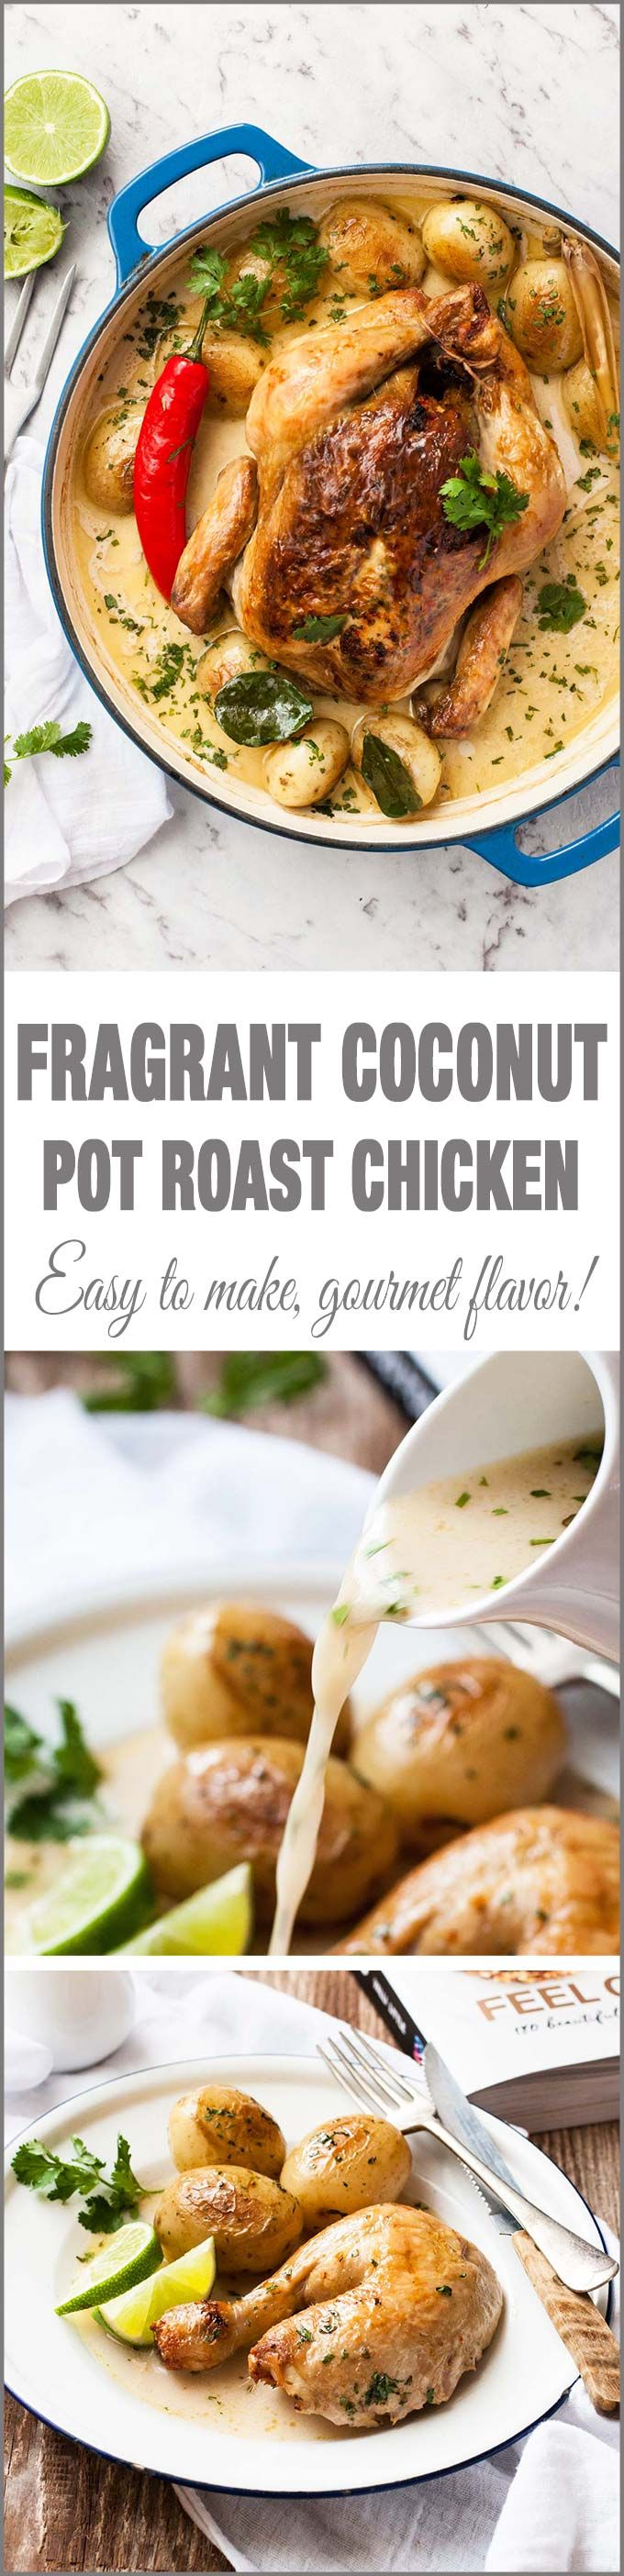 Fragrant Coconut Pot Roasted Chicken - Juicy chicken roasted in a fragrant Asian-style coconut broth. Amazing flavor for so few ingredients!